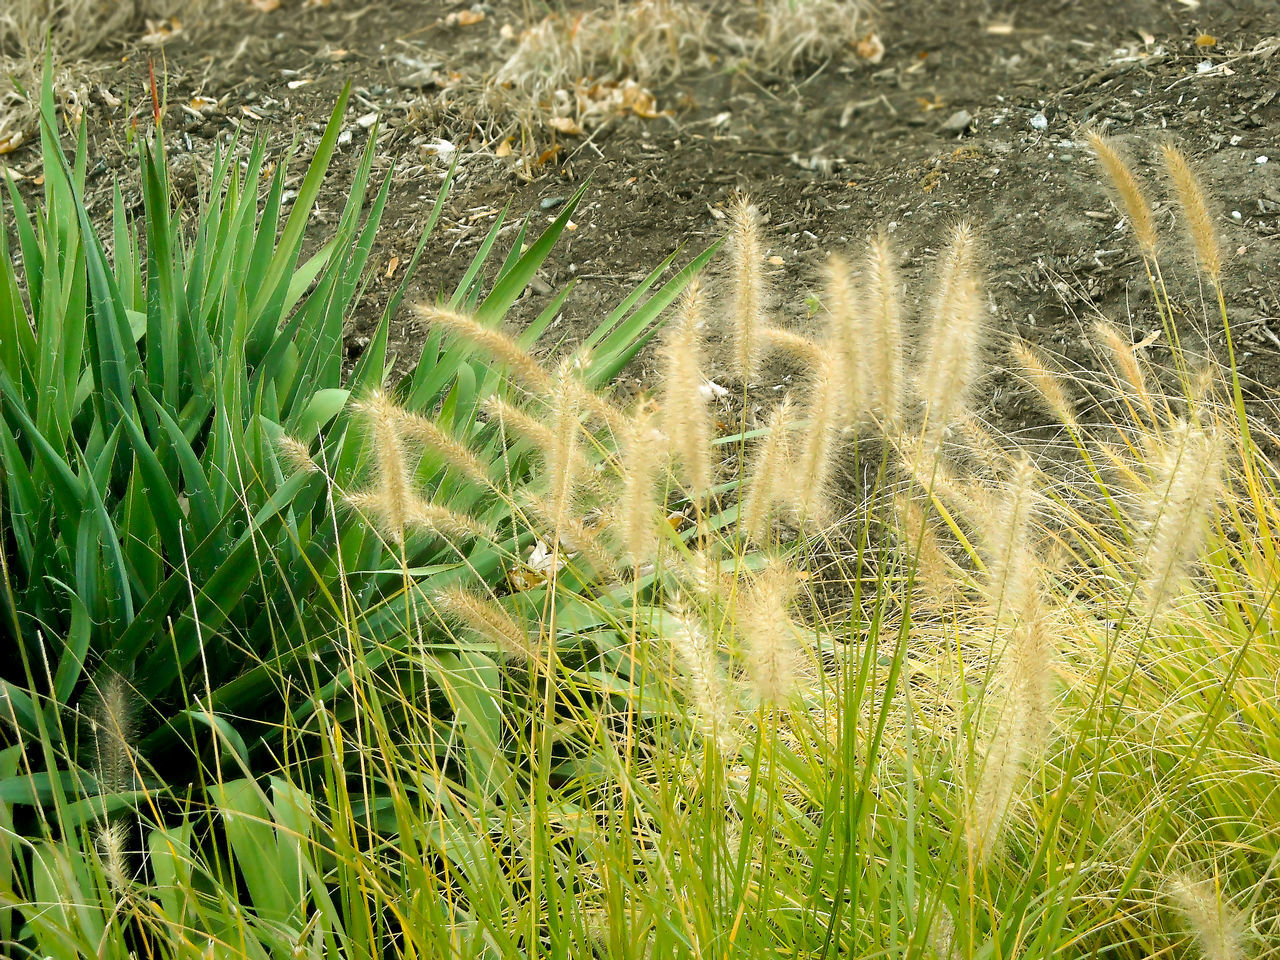 growth, grass, nature, field, green color, no people, outdoors, day, plant, beauty in nature, agriculture, cereal plant, wheat, freshness, close-up